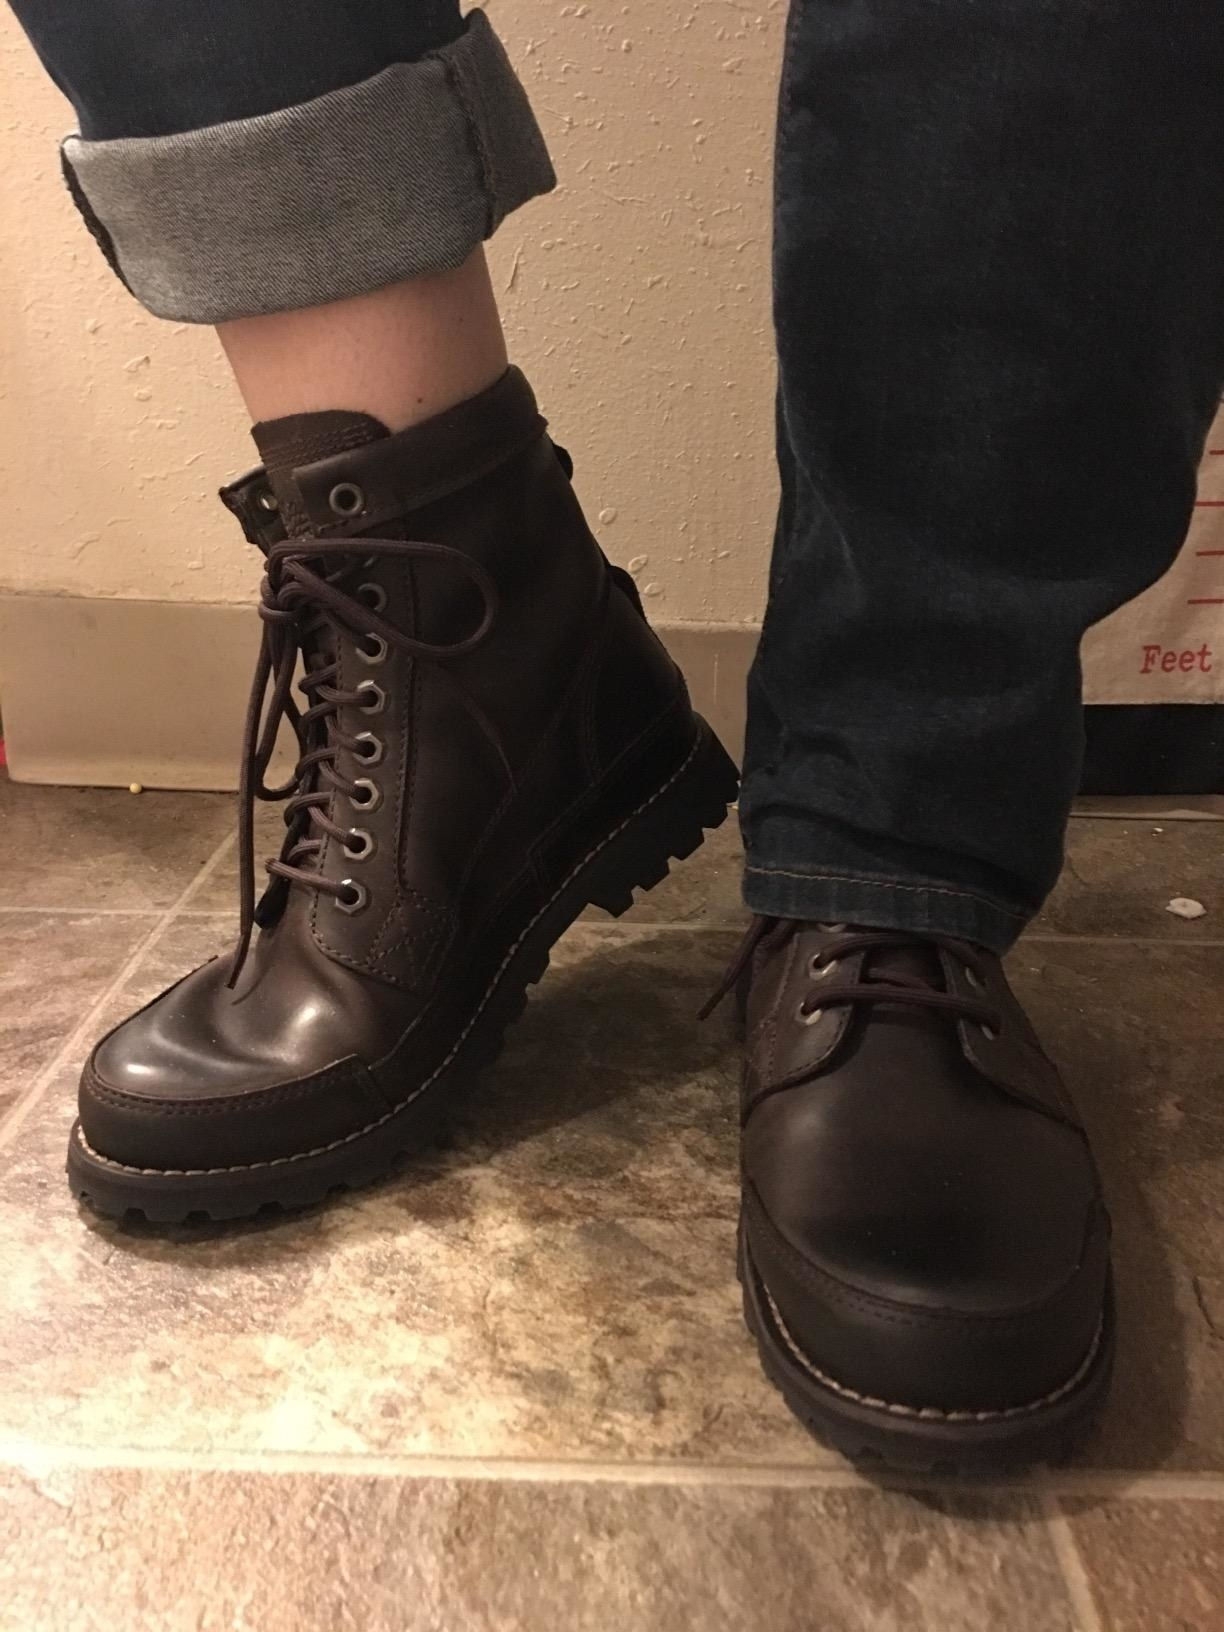 reviewer photo wearing the boots in dark brown